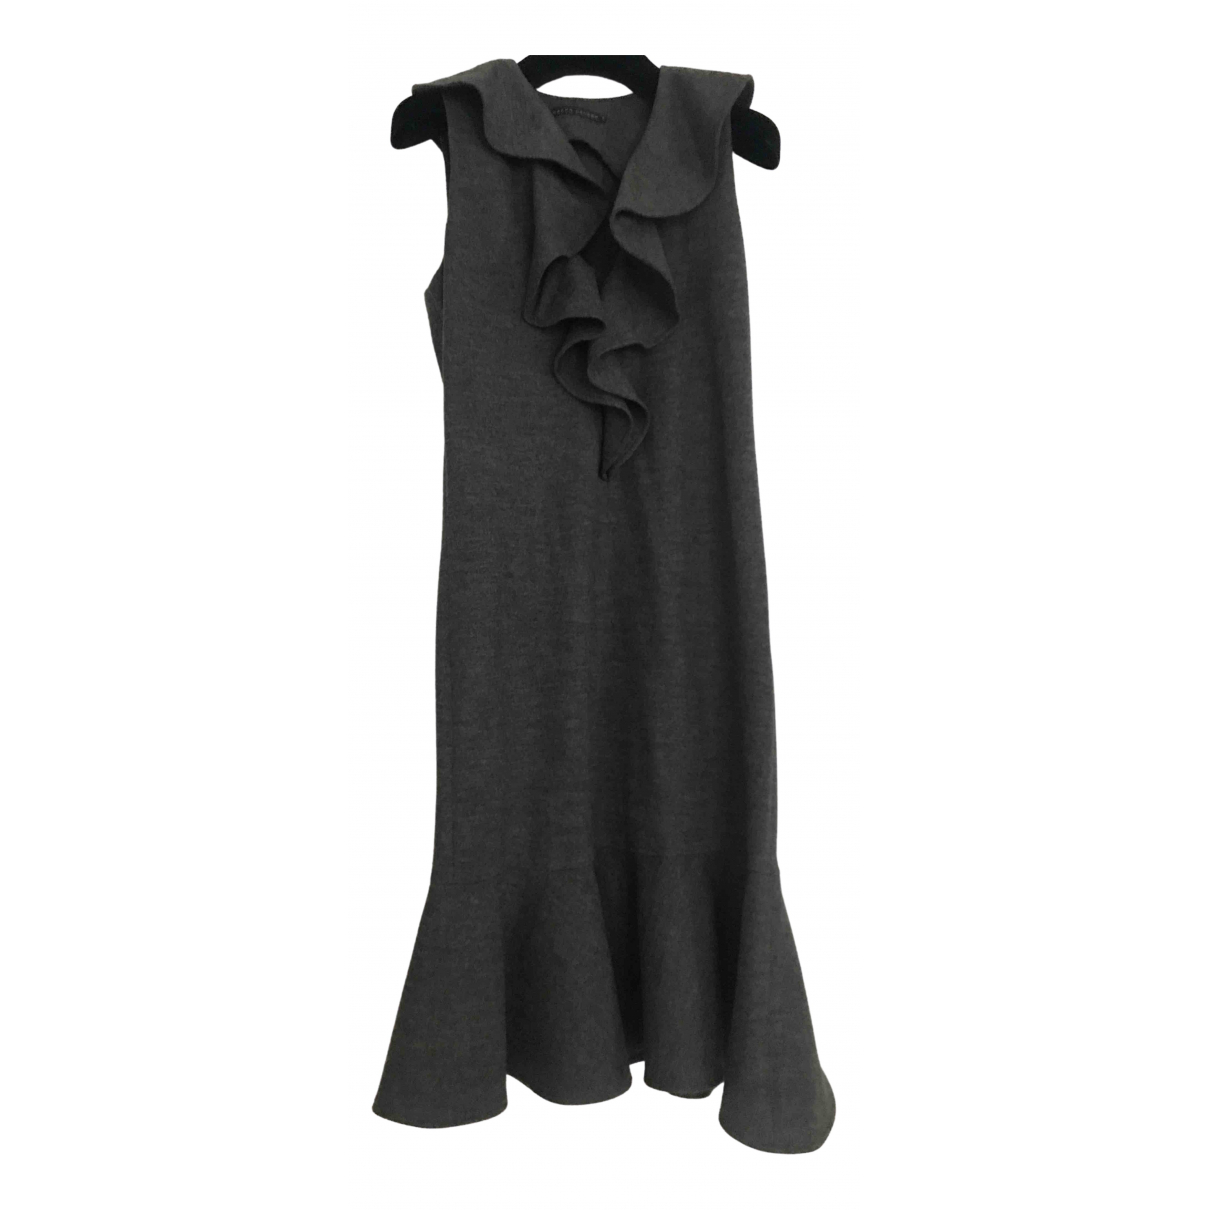 Ralph Lauren \N Grey Wool dress for Women 38 FR